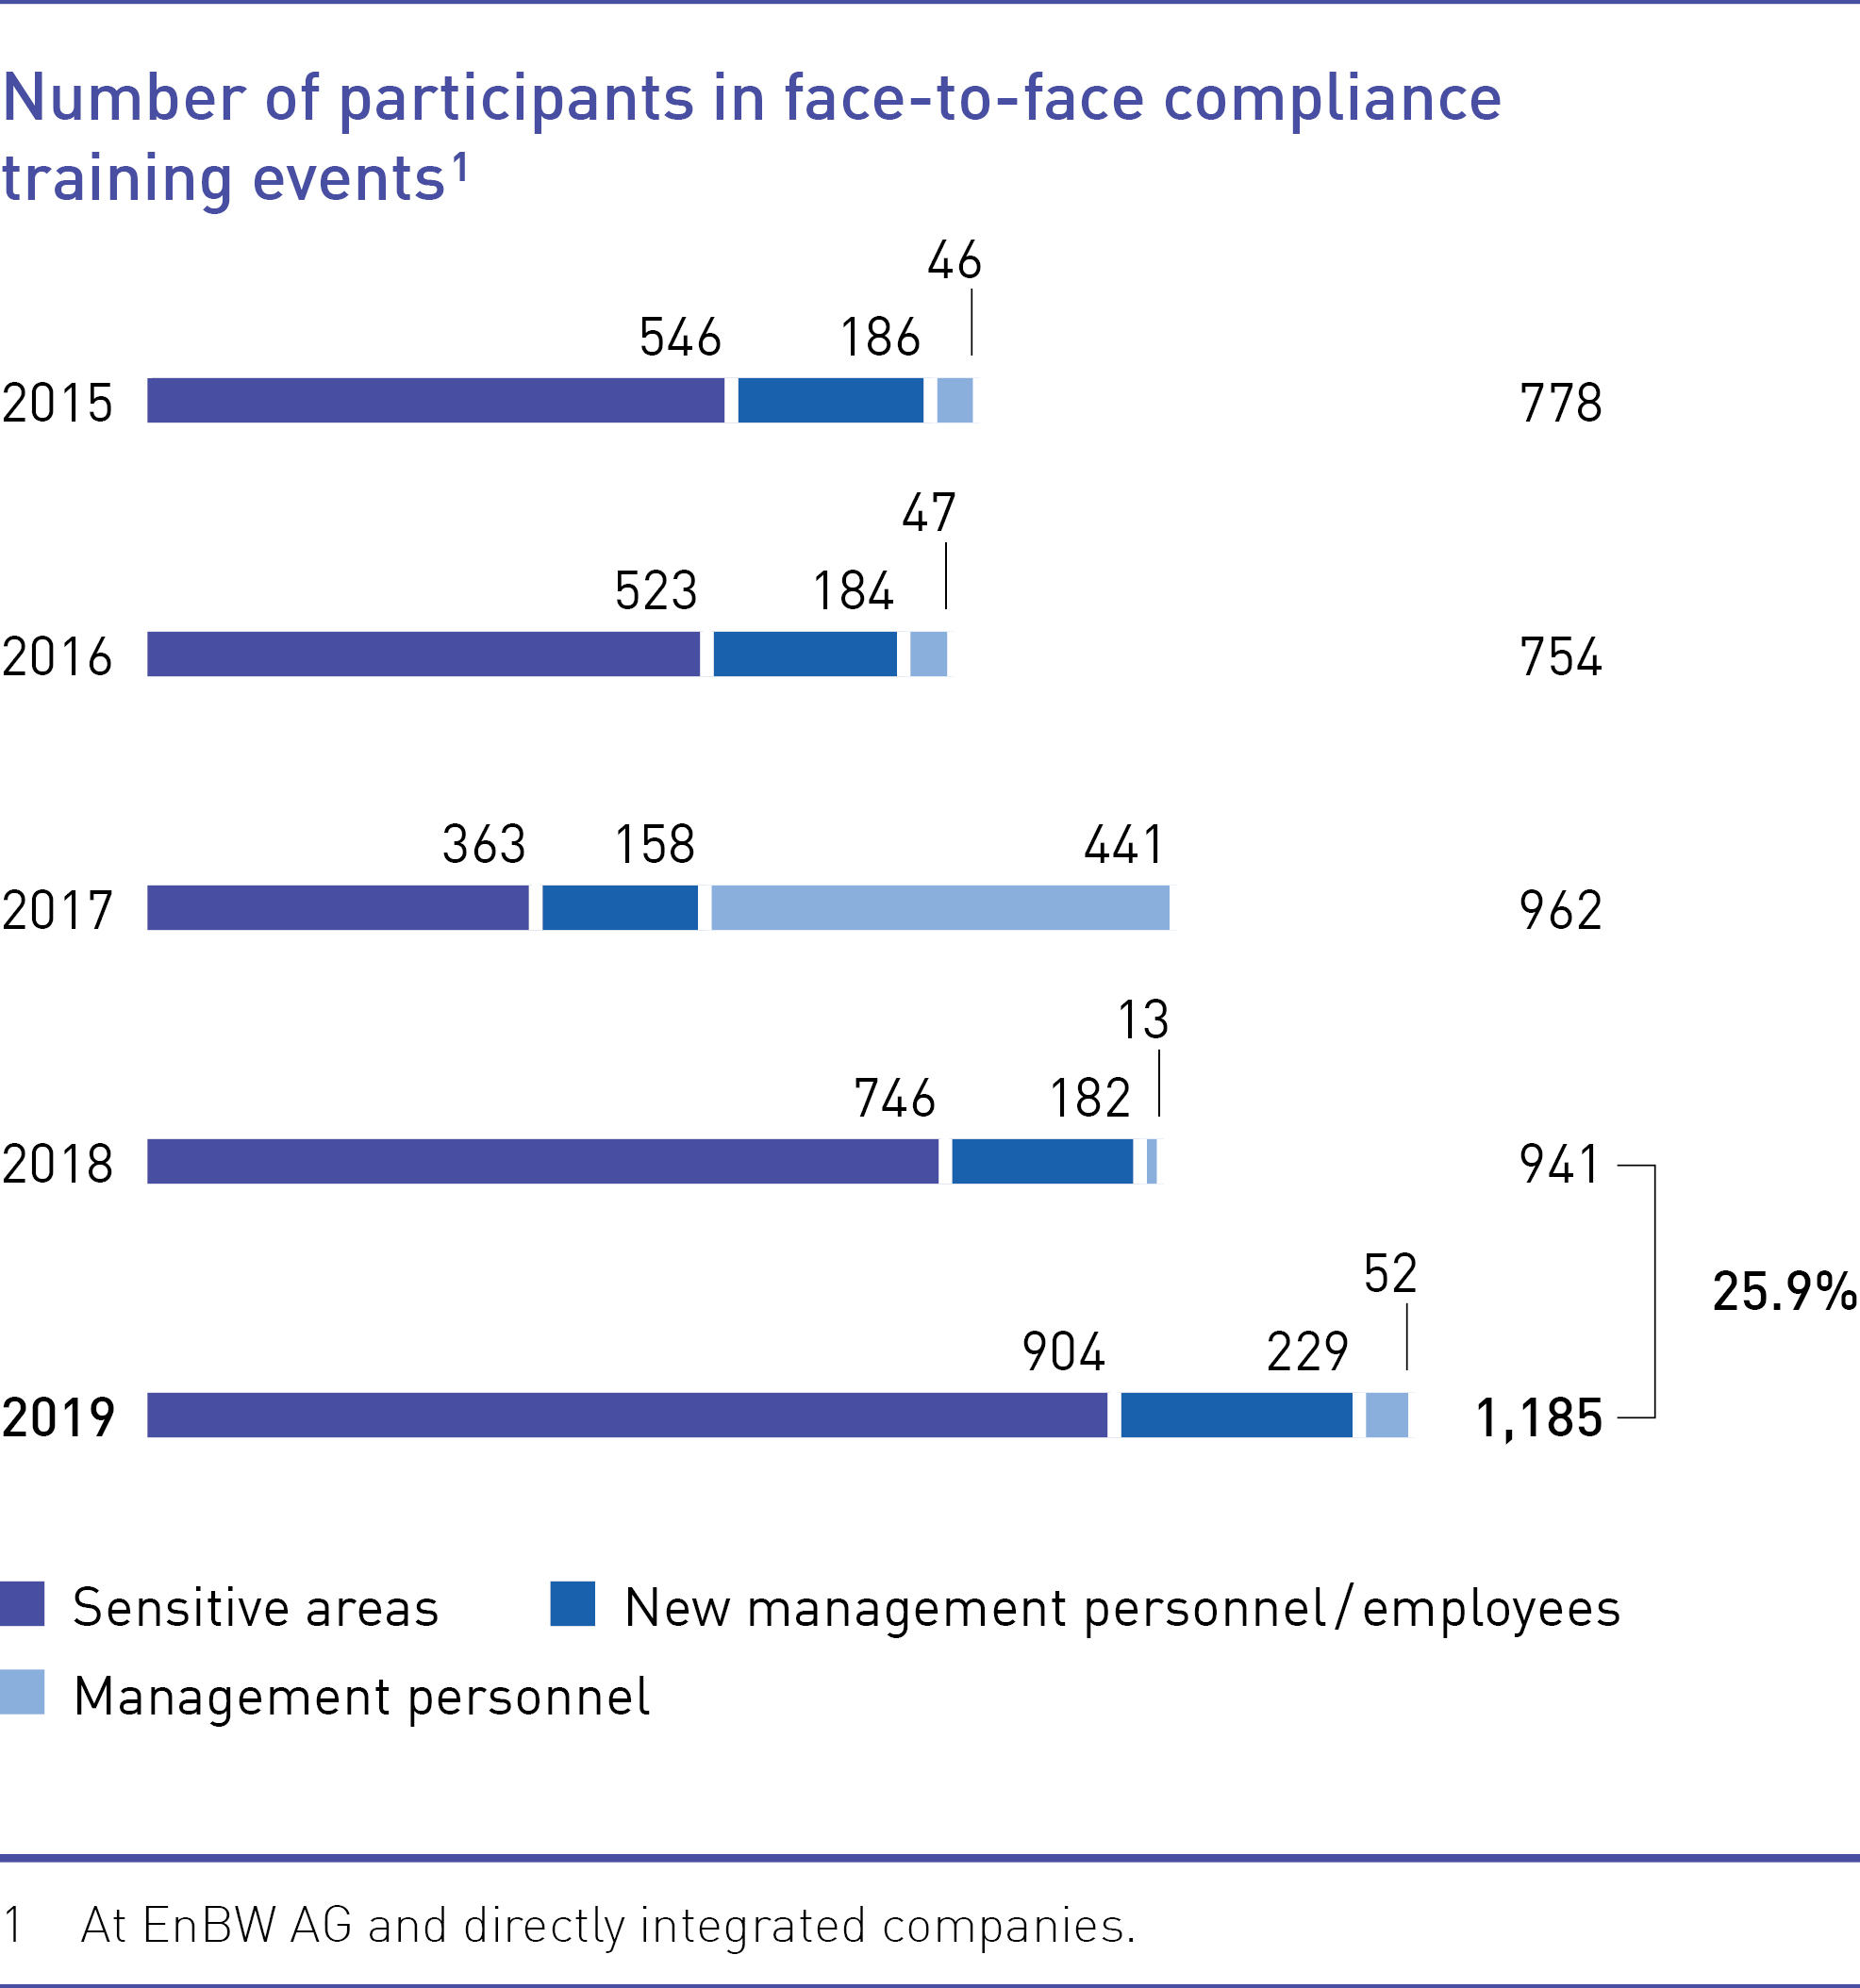 Number of participants in face-to-face compliance training events